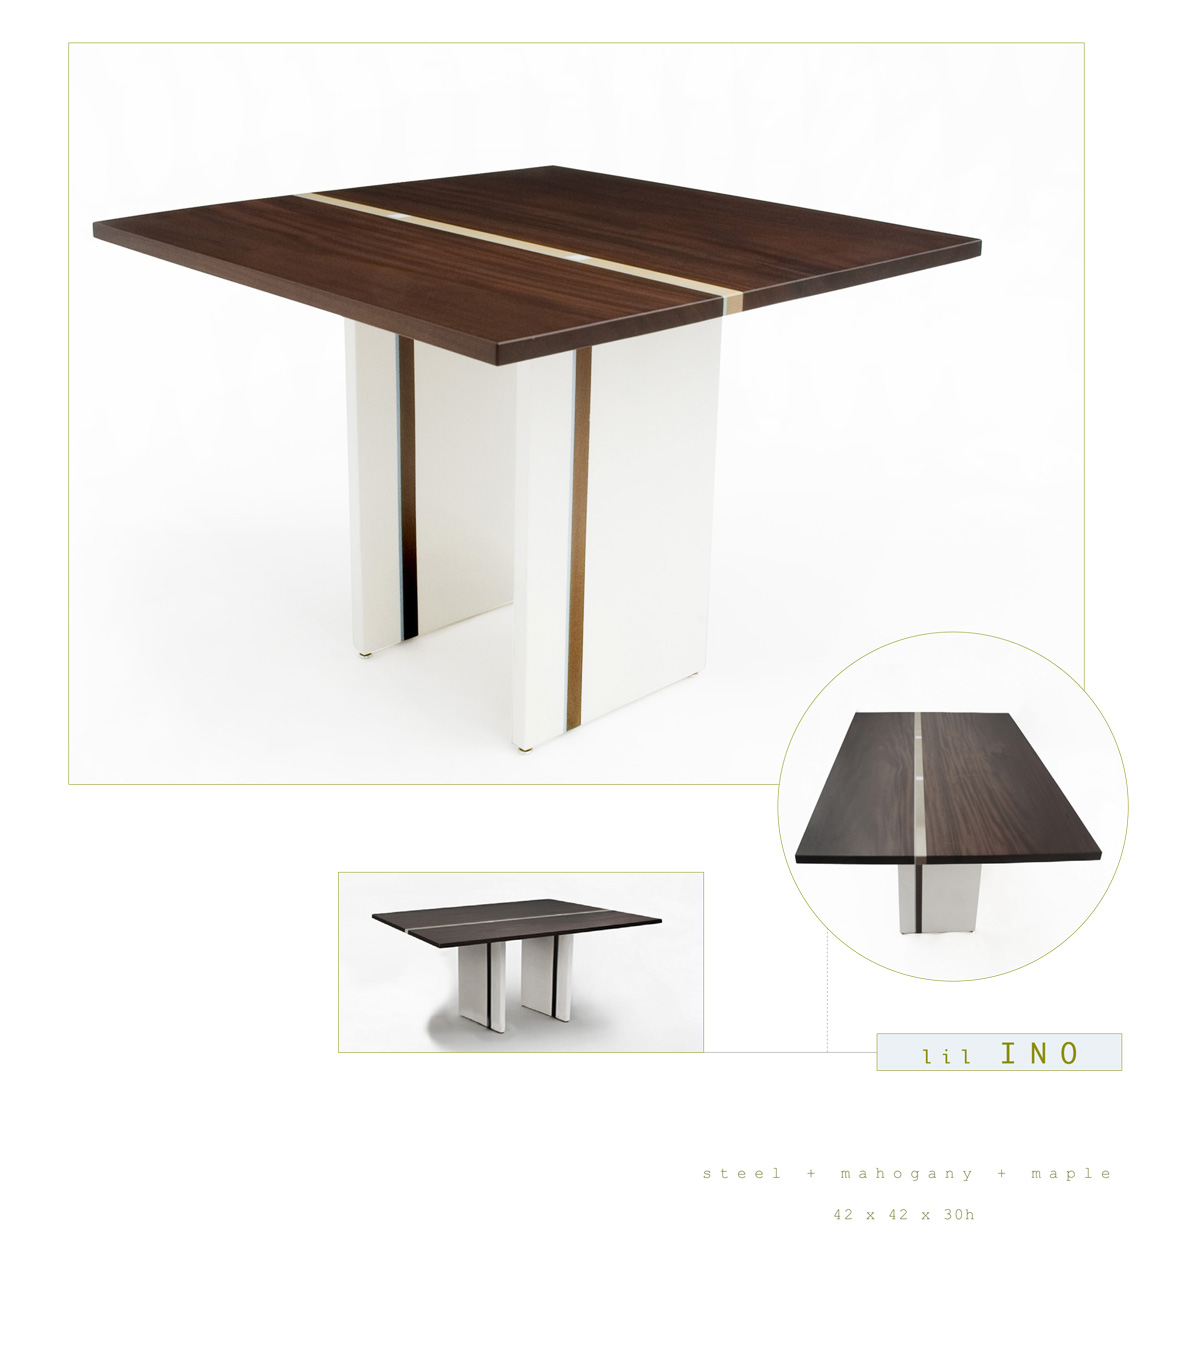 Lil Ino is a contemporary dining table made out of steel, mahogany and maple measuring 42 x 42 x 30 inches made by Chad Manley Design.